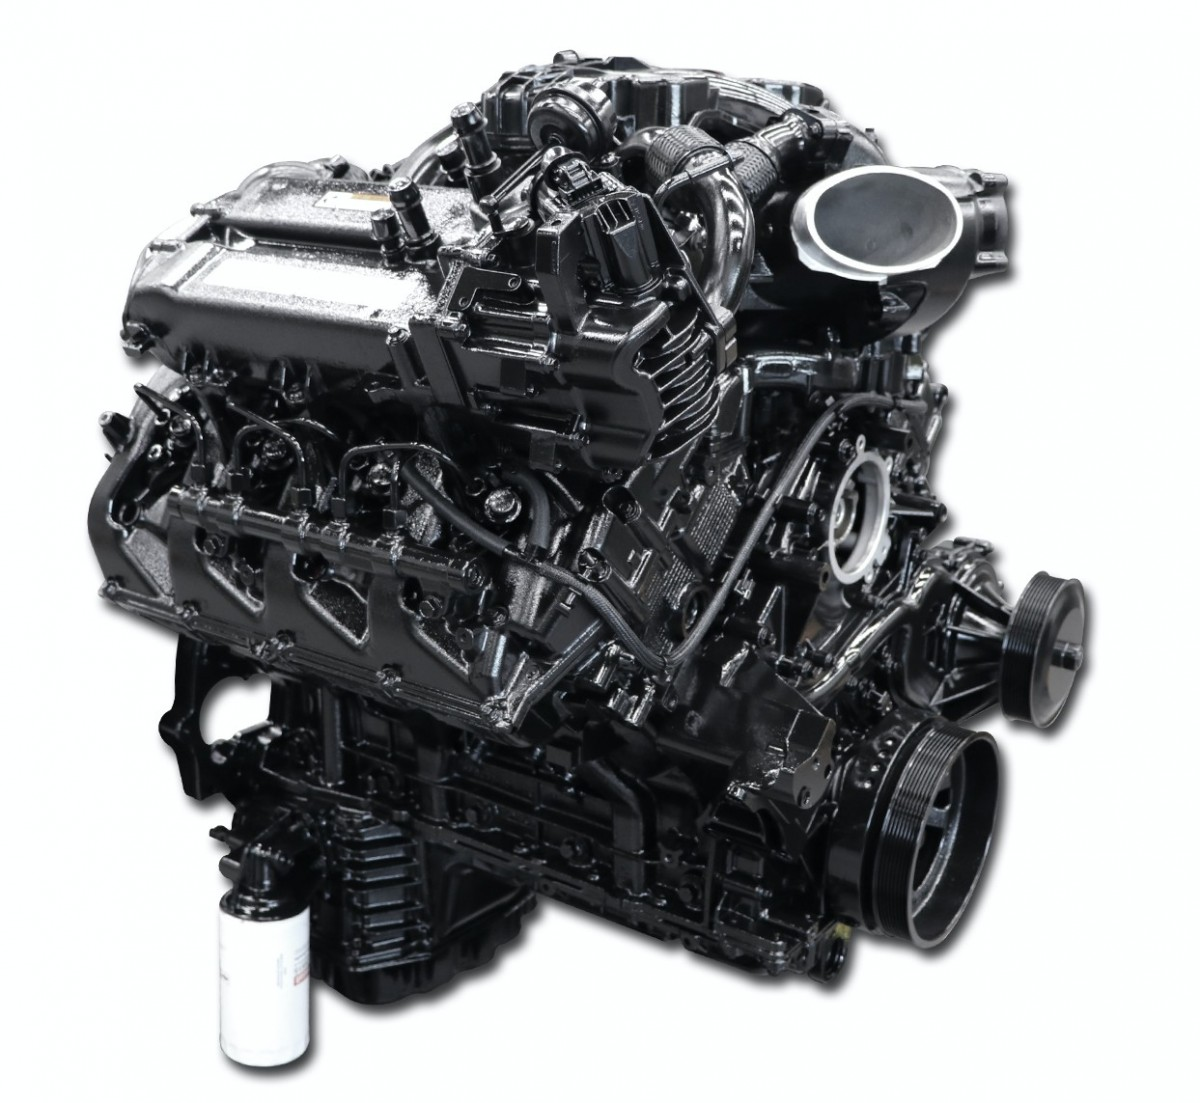 Ford 6.7L Scorpion Running Complete Diesel Engine